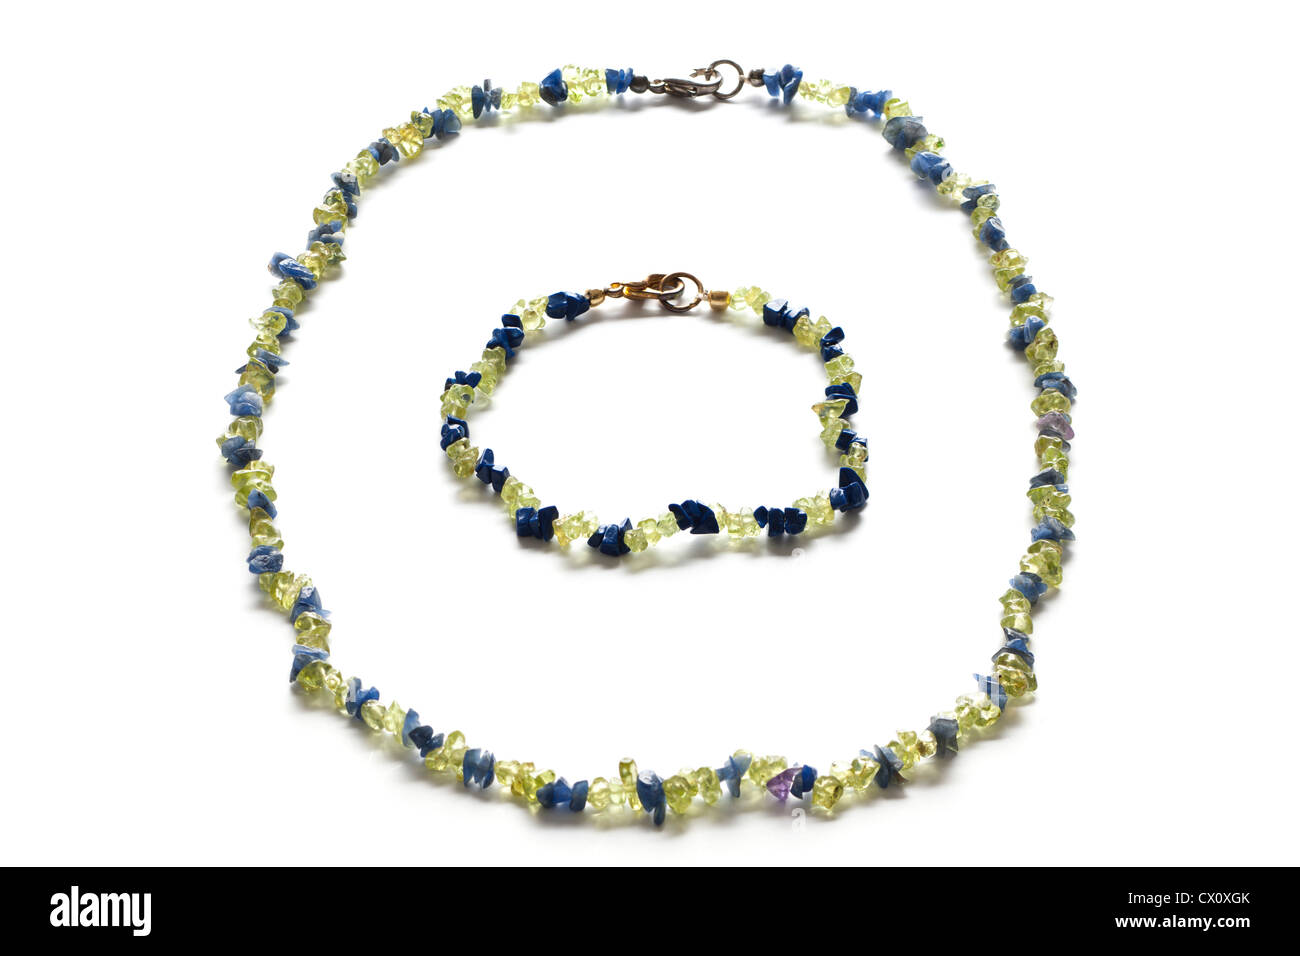 Green and blue plastic threaded bead necklace and matching bracelet - Stock Image